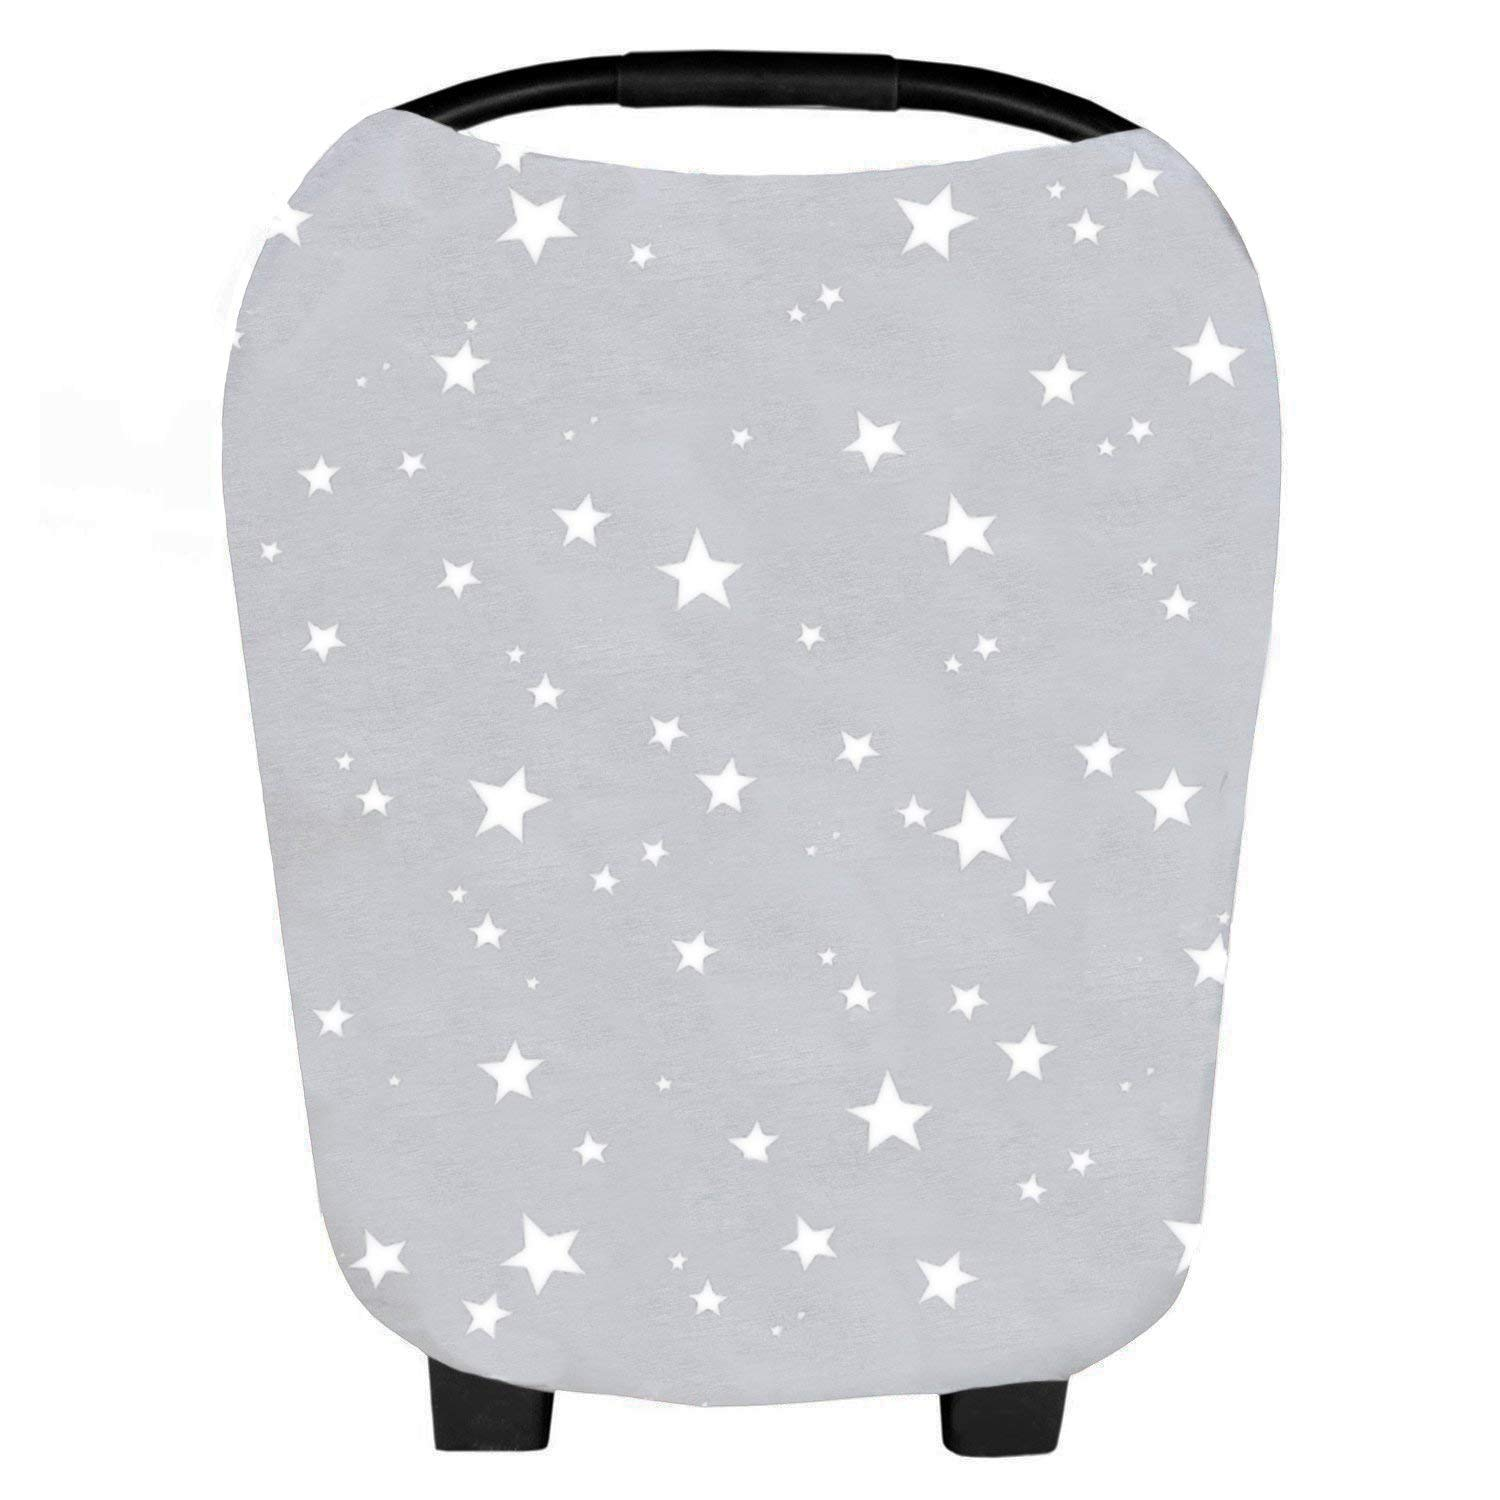 Baby Car Seat Cover & Multi-Use Nursing Cover 5 in 1 Canopy Starry by Belle & Baby Pop Arrow